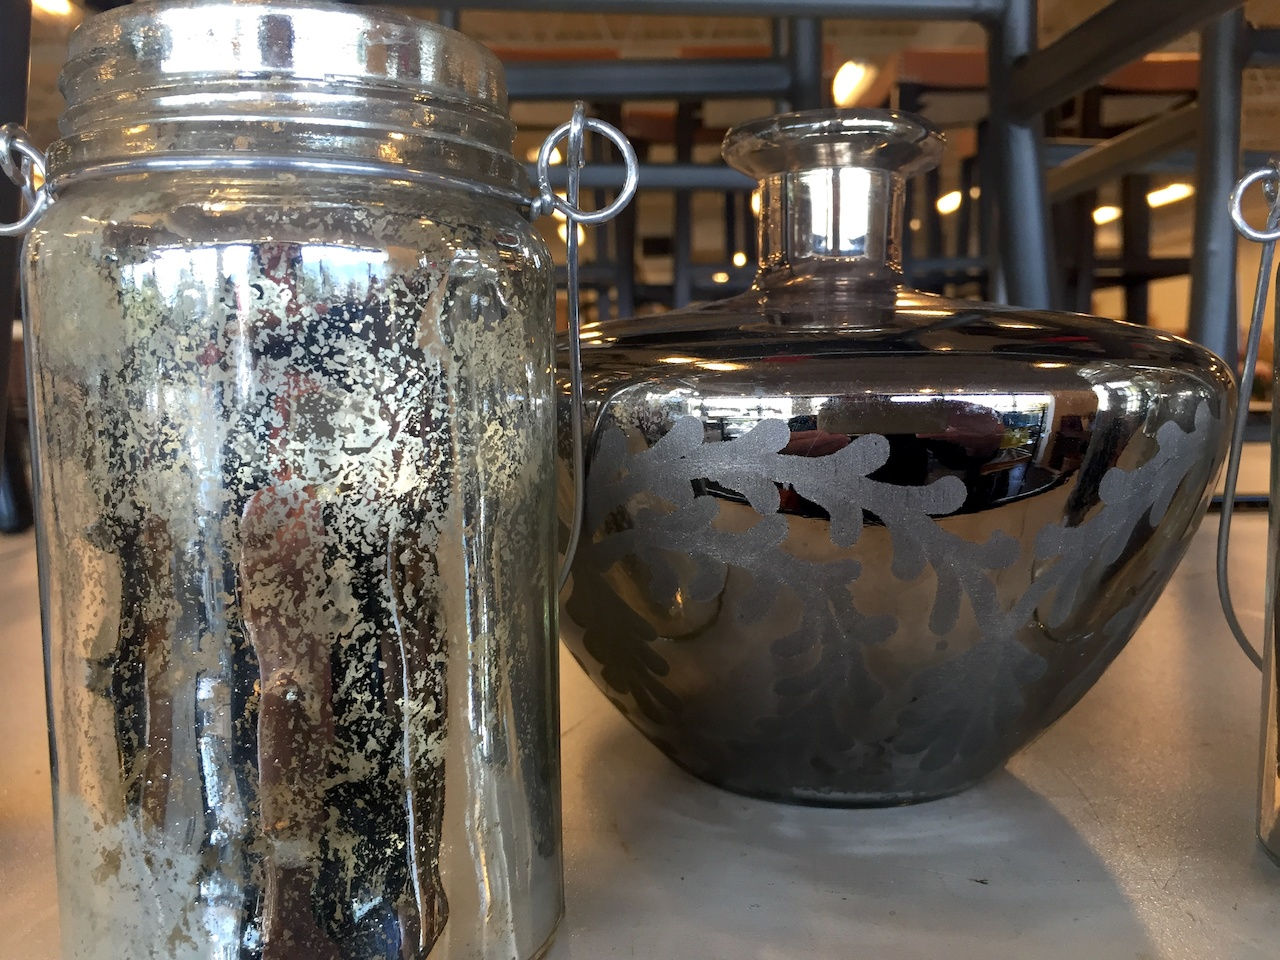 Mercury glass mason jar, $9.99 and Sienna vase, $21.99 from Pottery Barn Outlet